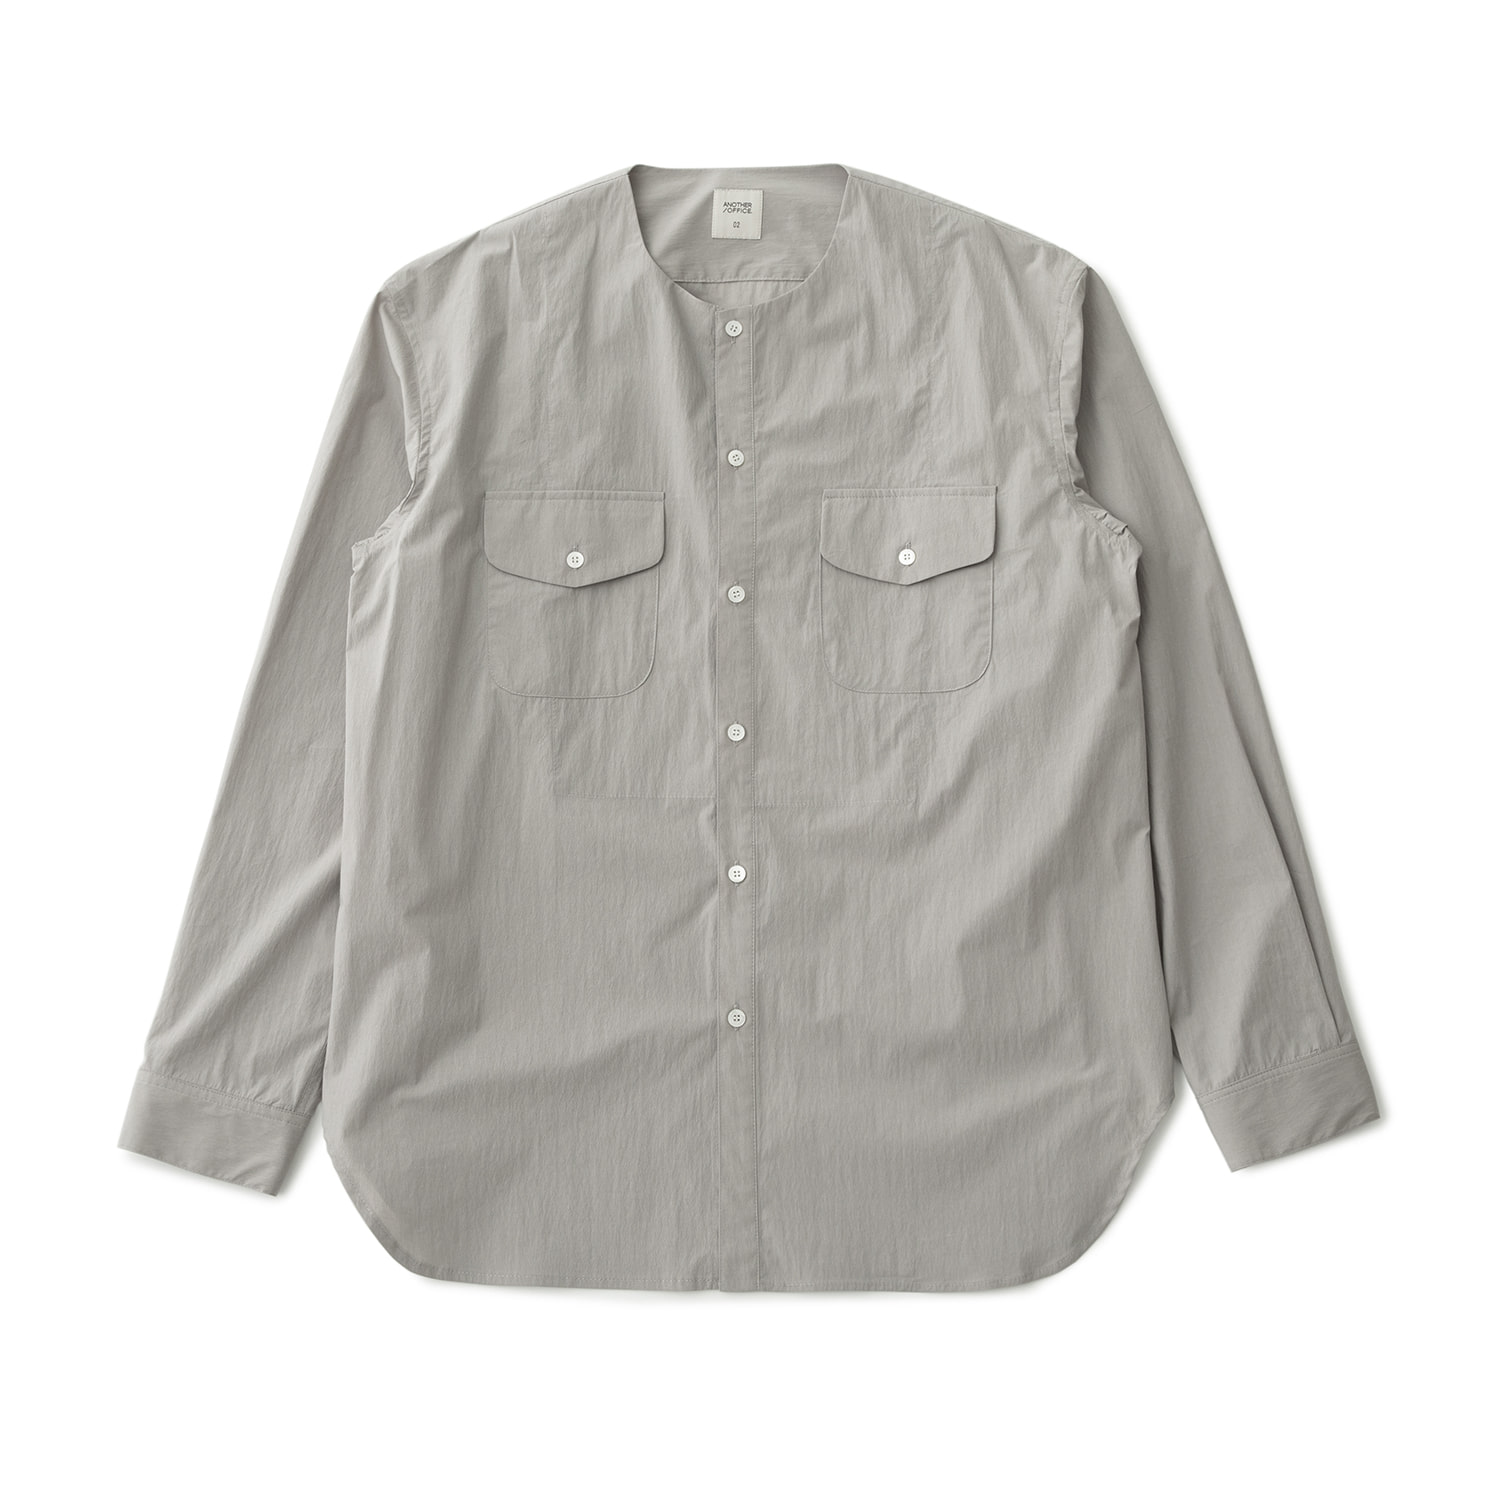 21SS Layer Round-neck Shirt (Misty Gray)